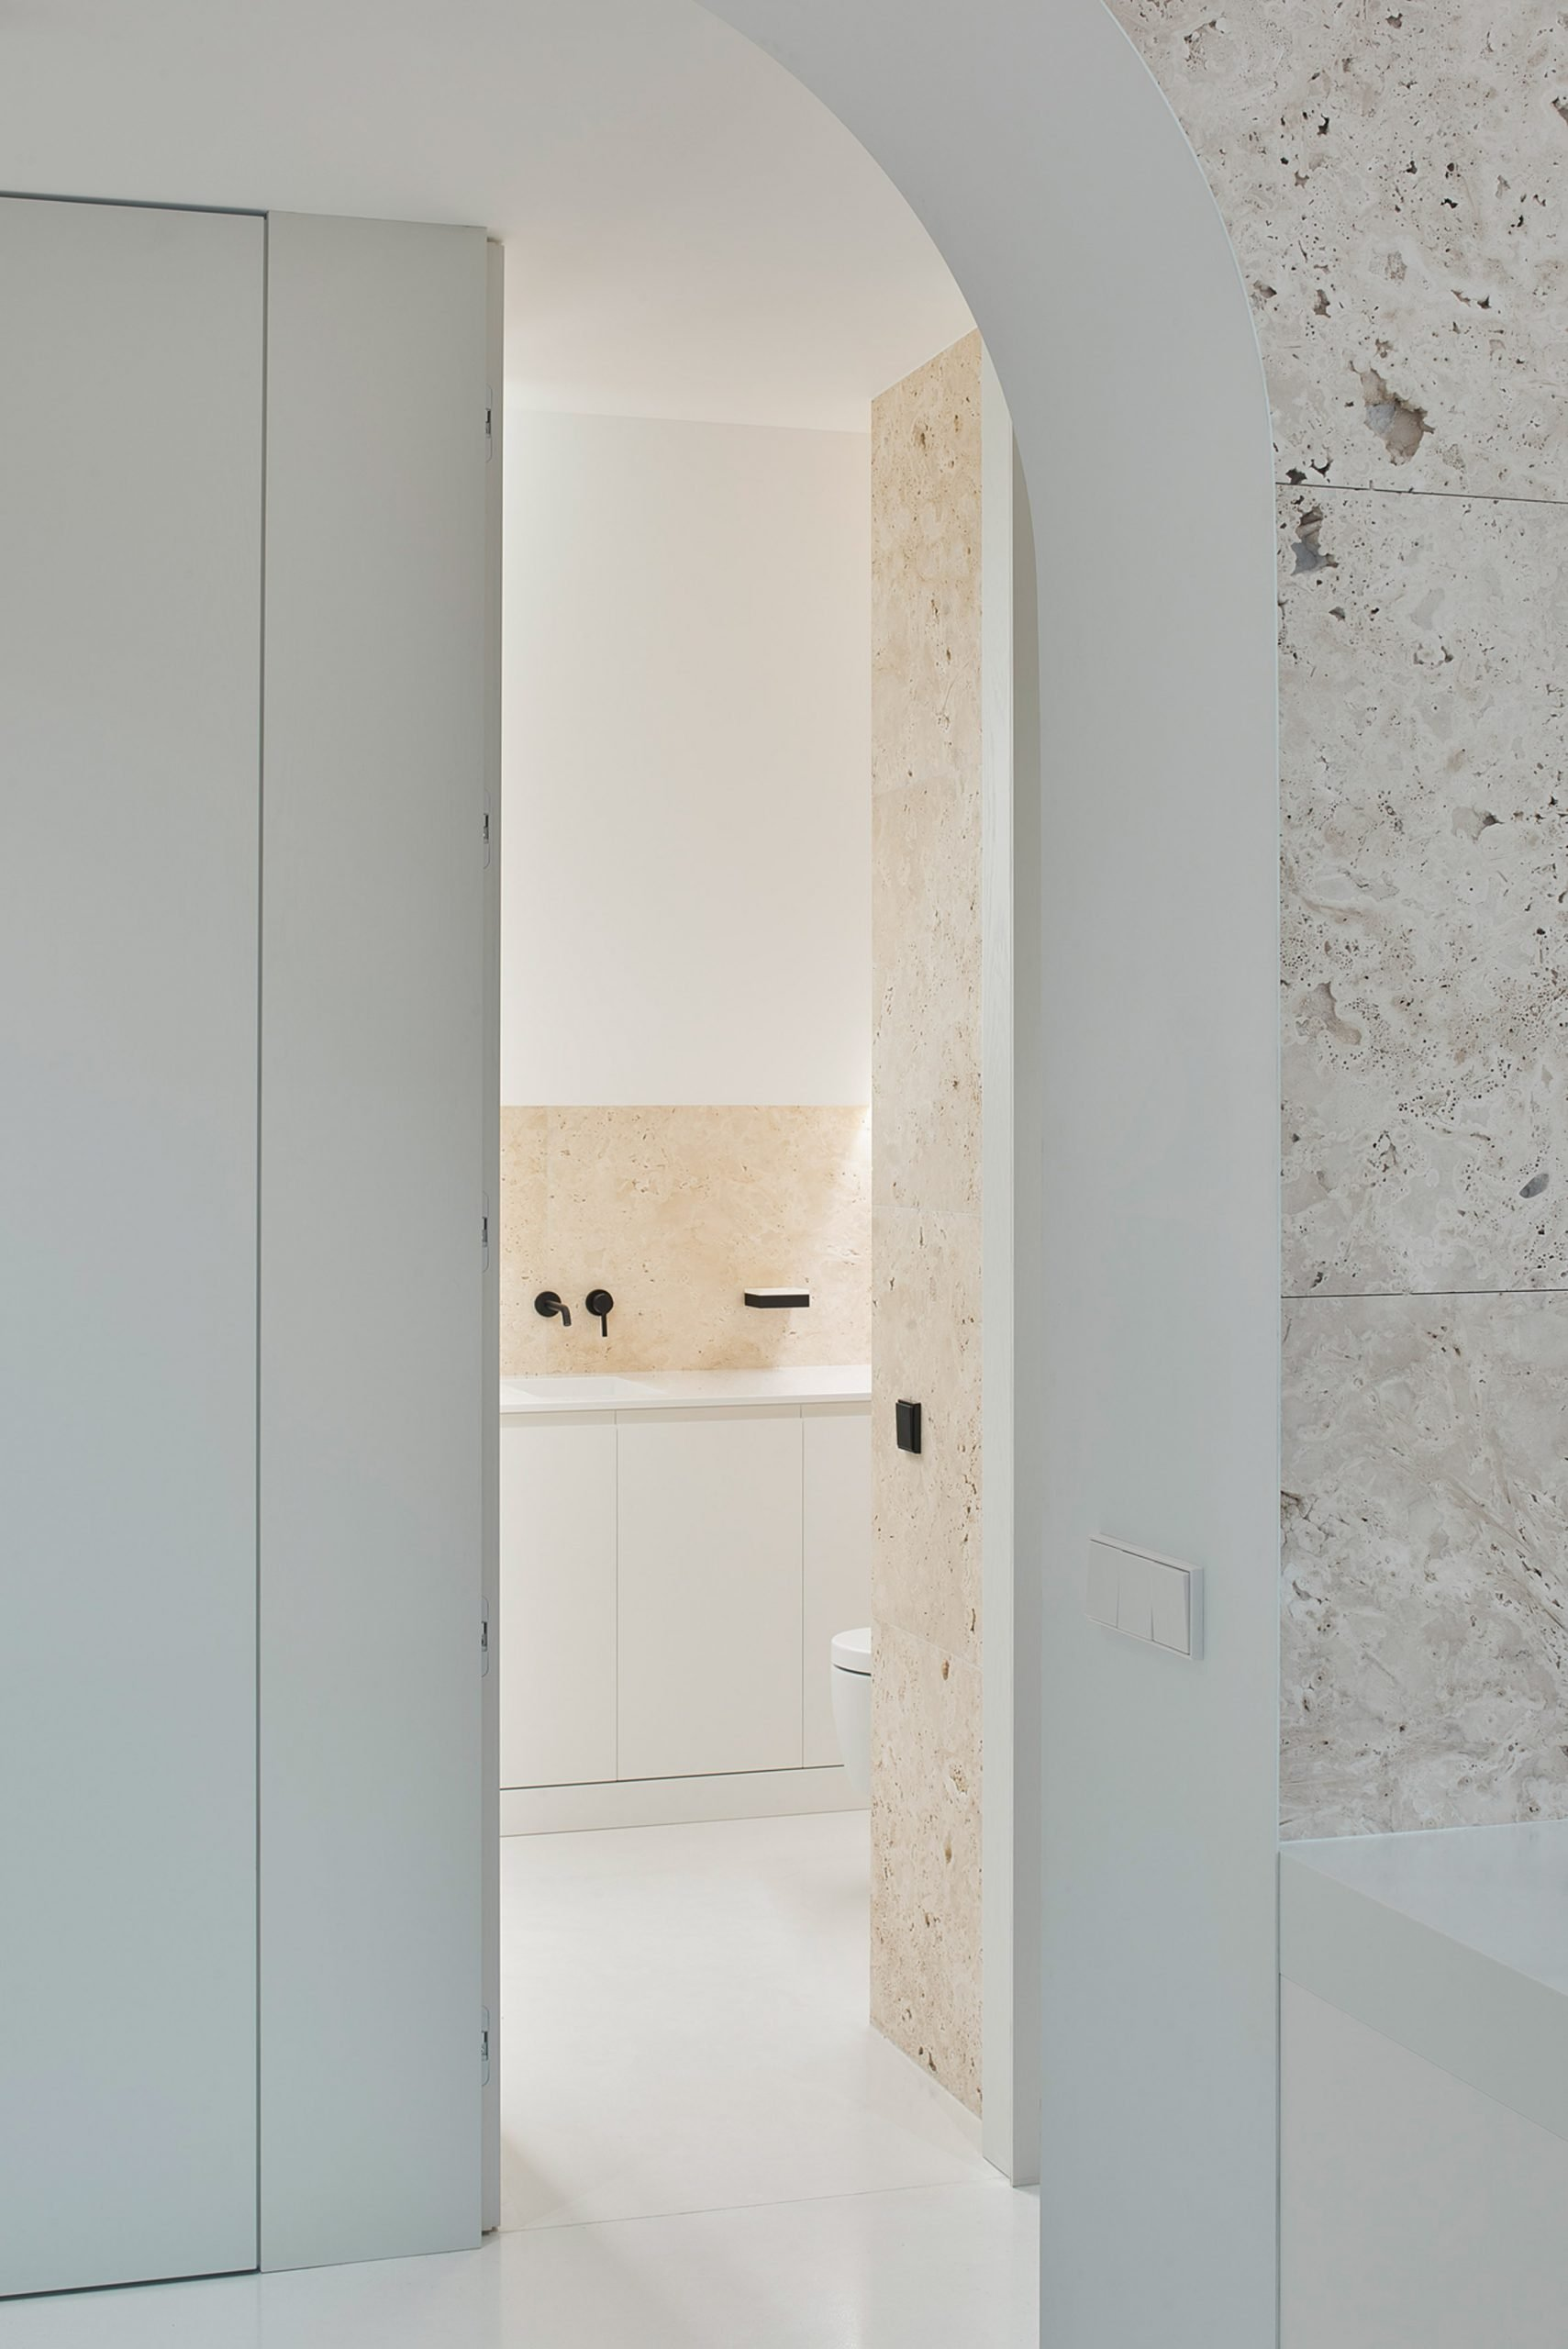 Bathroom with arched doorway in Greetings from Rome flat